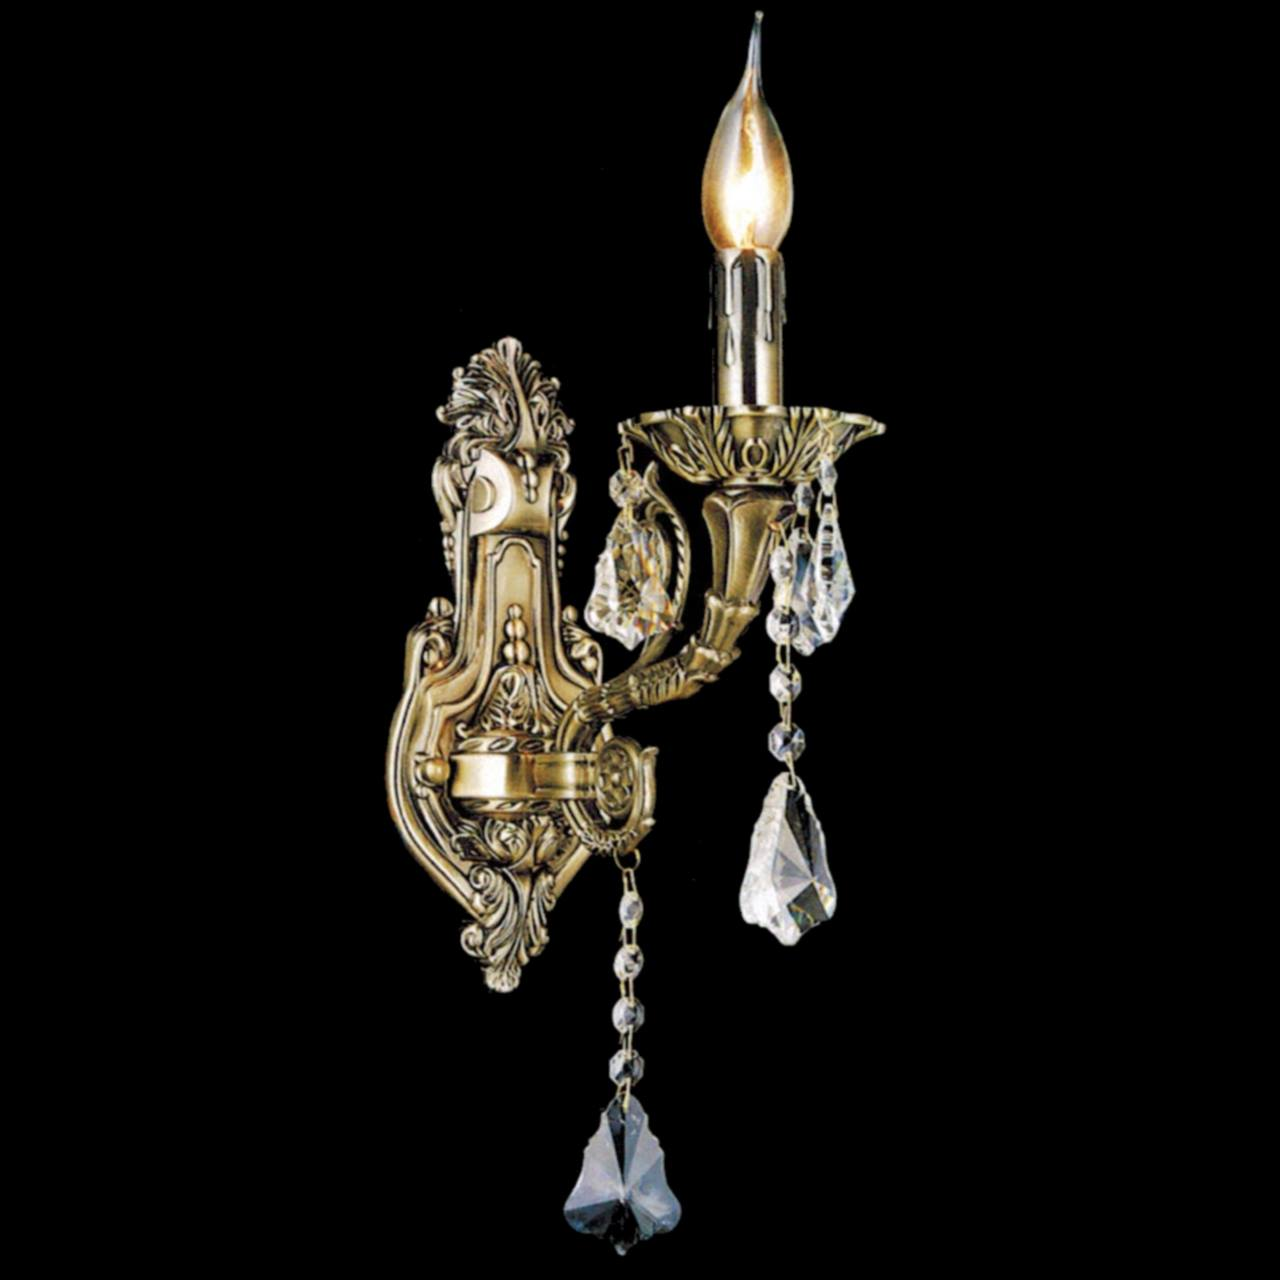 Wall Sconce Crystal Lighting : Brizzo Lighting Stores. 13